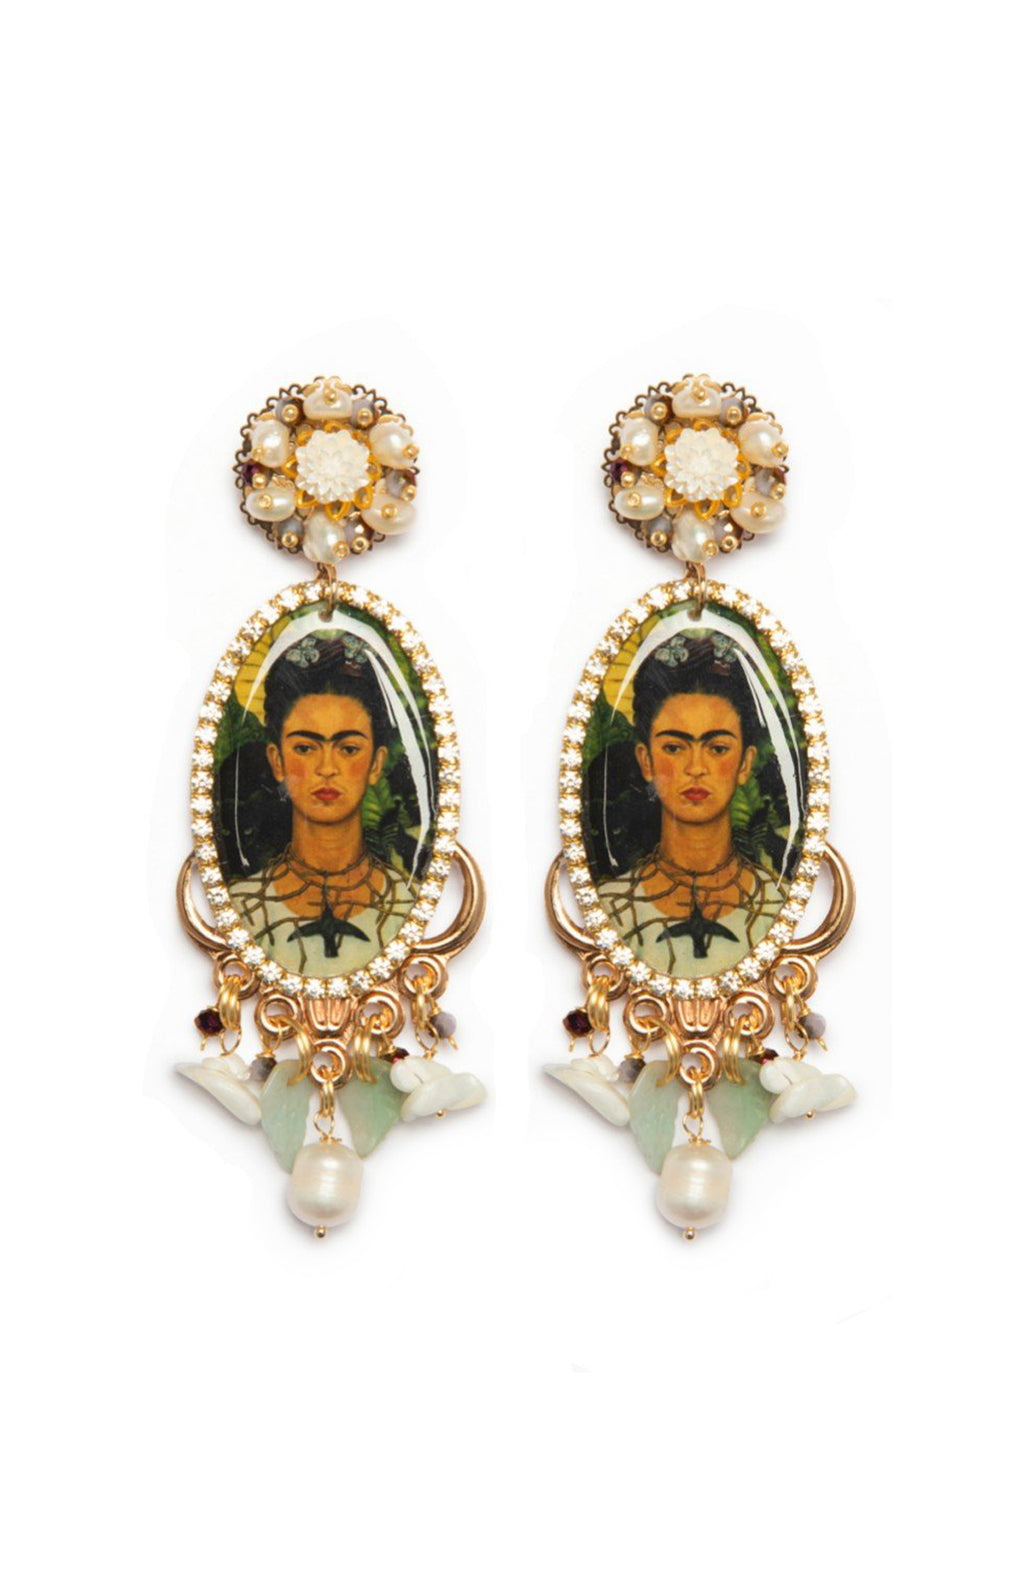 Frida Self Portrait Earrings